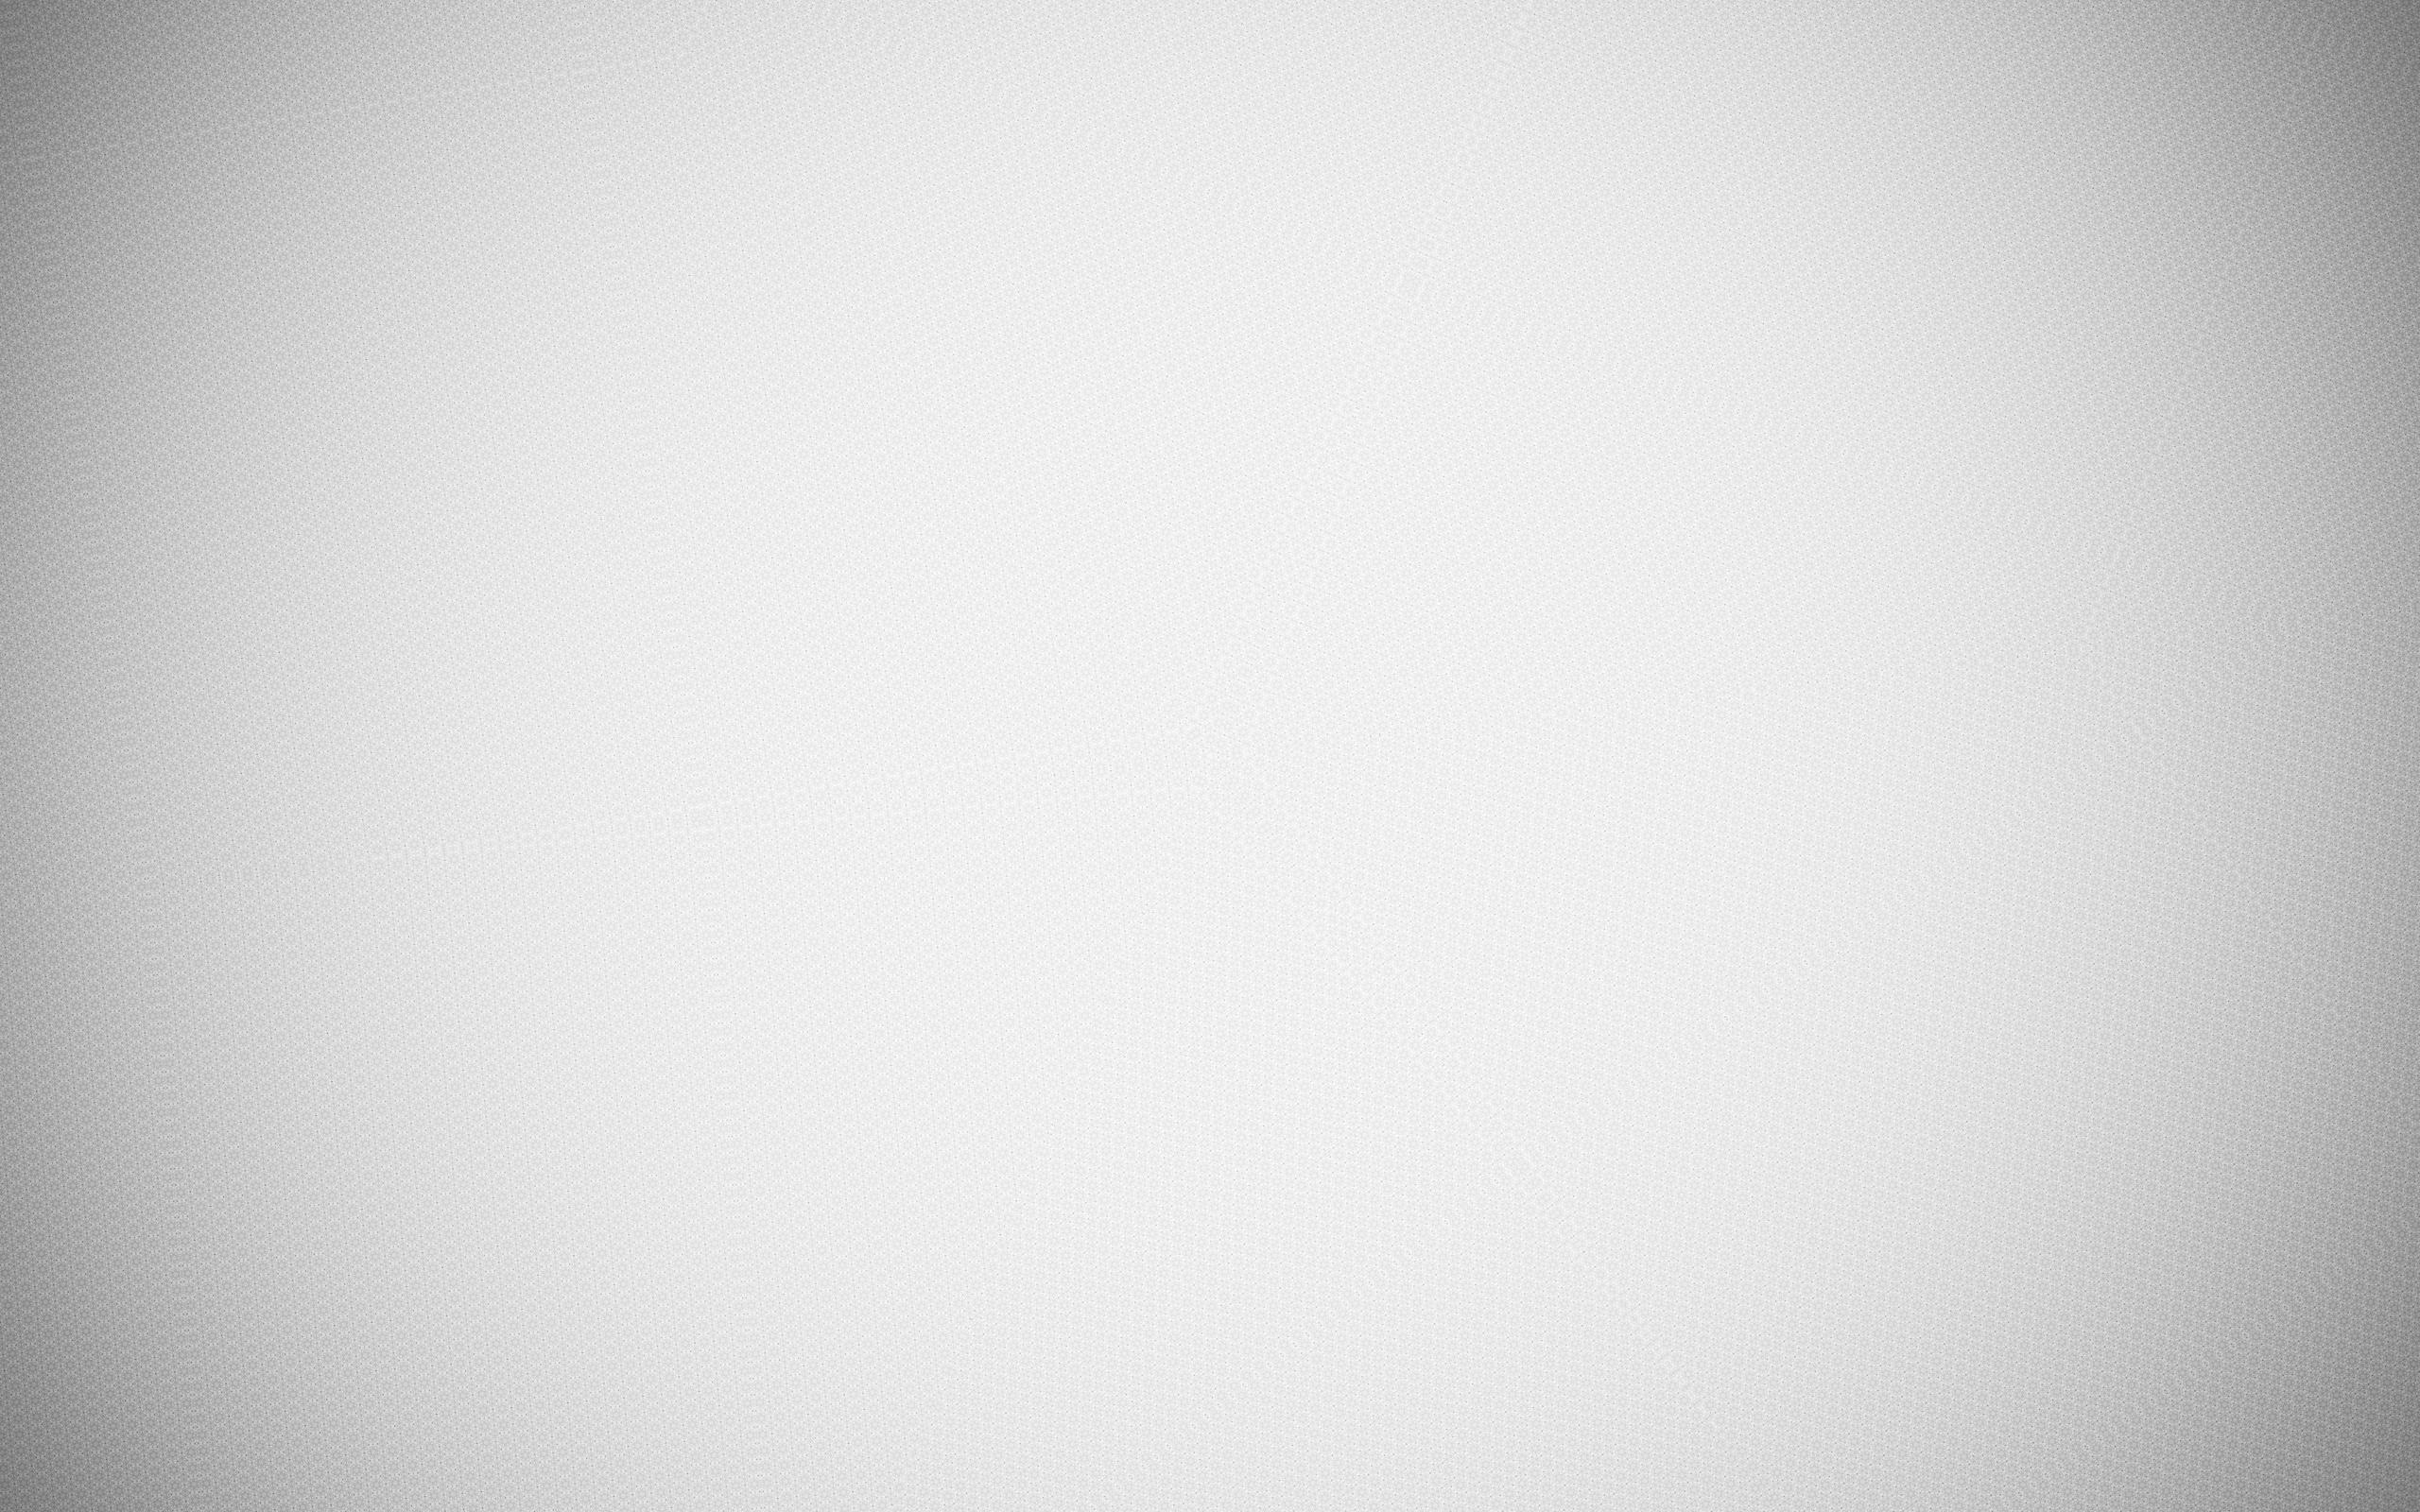 Light-Grey-Background-Hd-5 - A Better Today Media